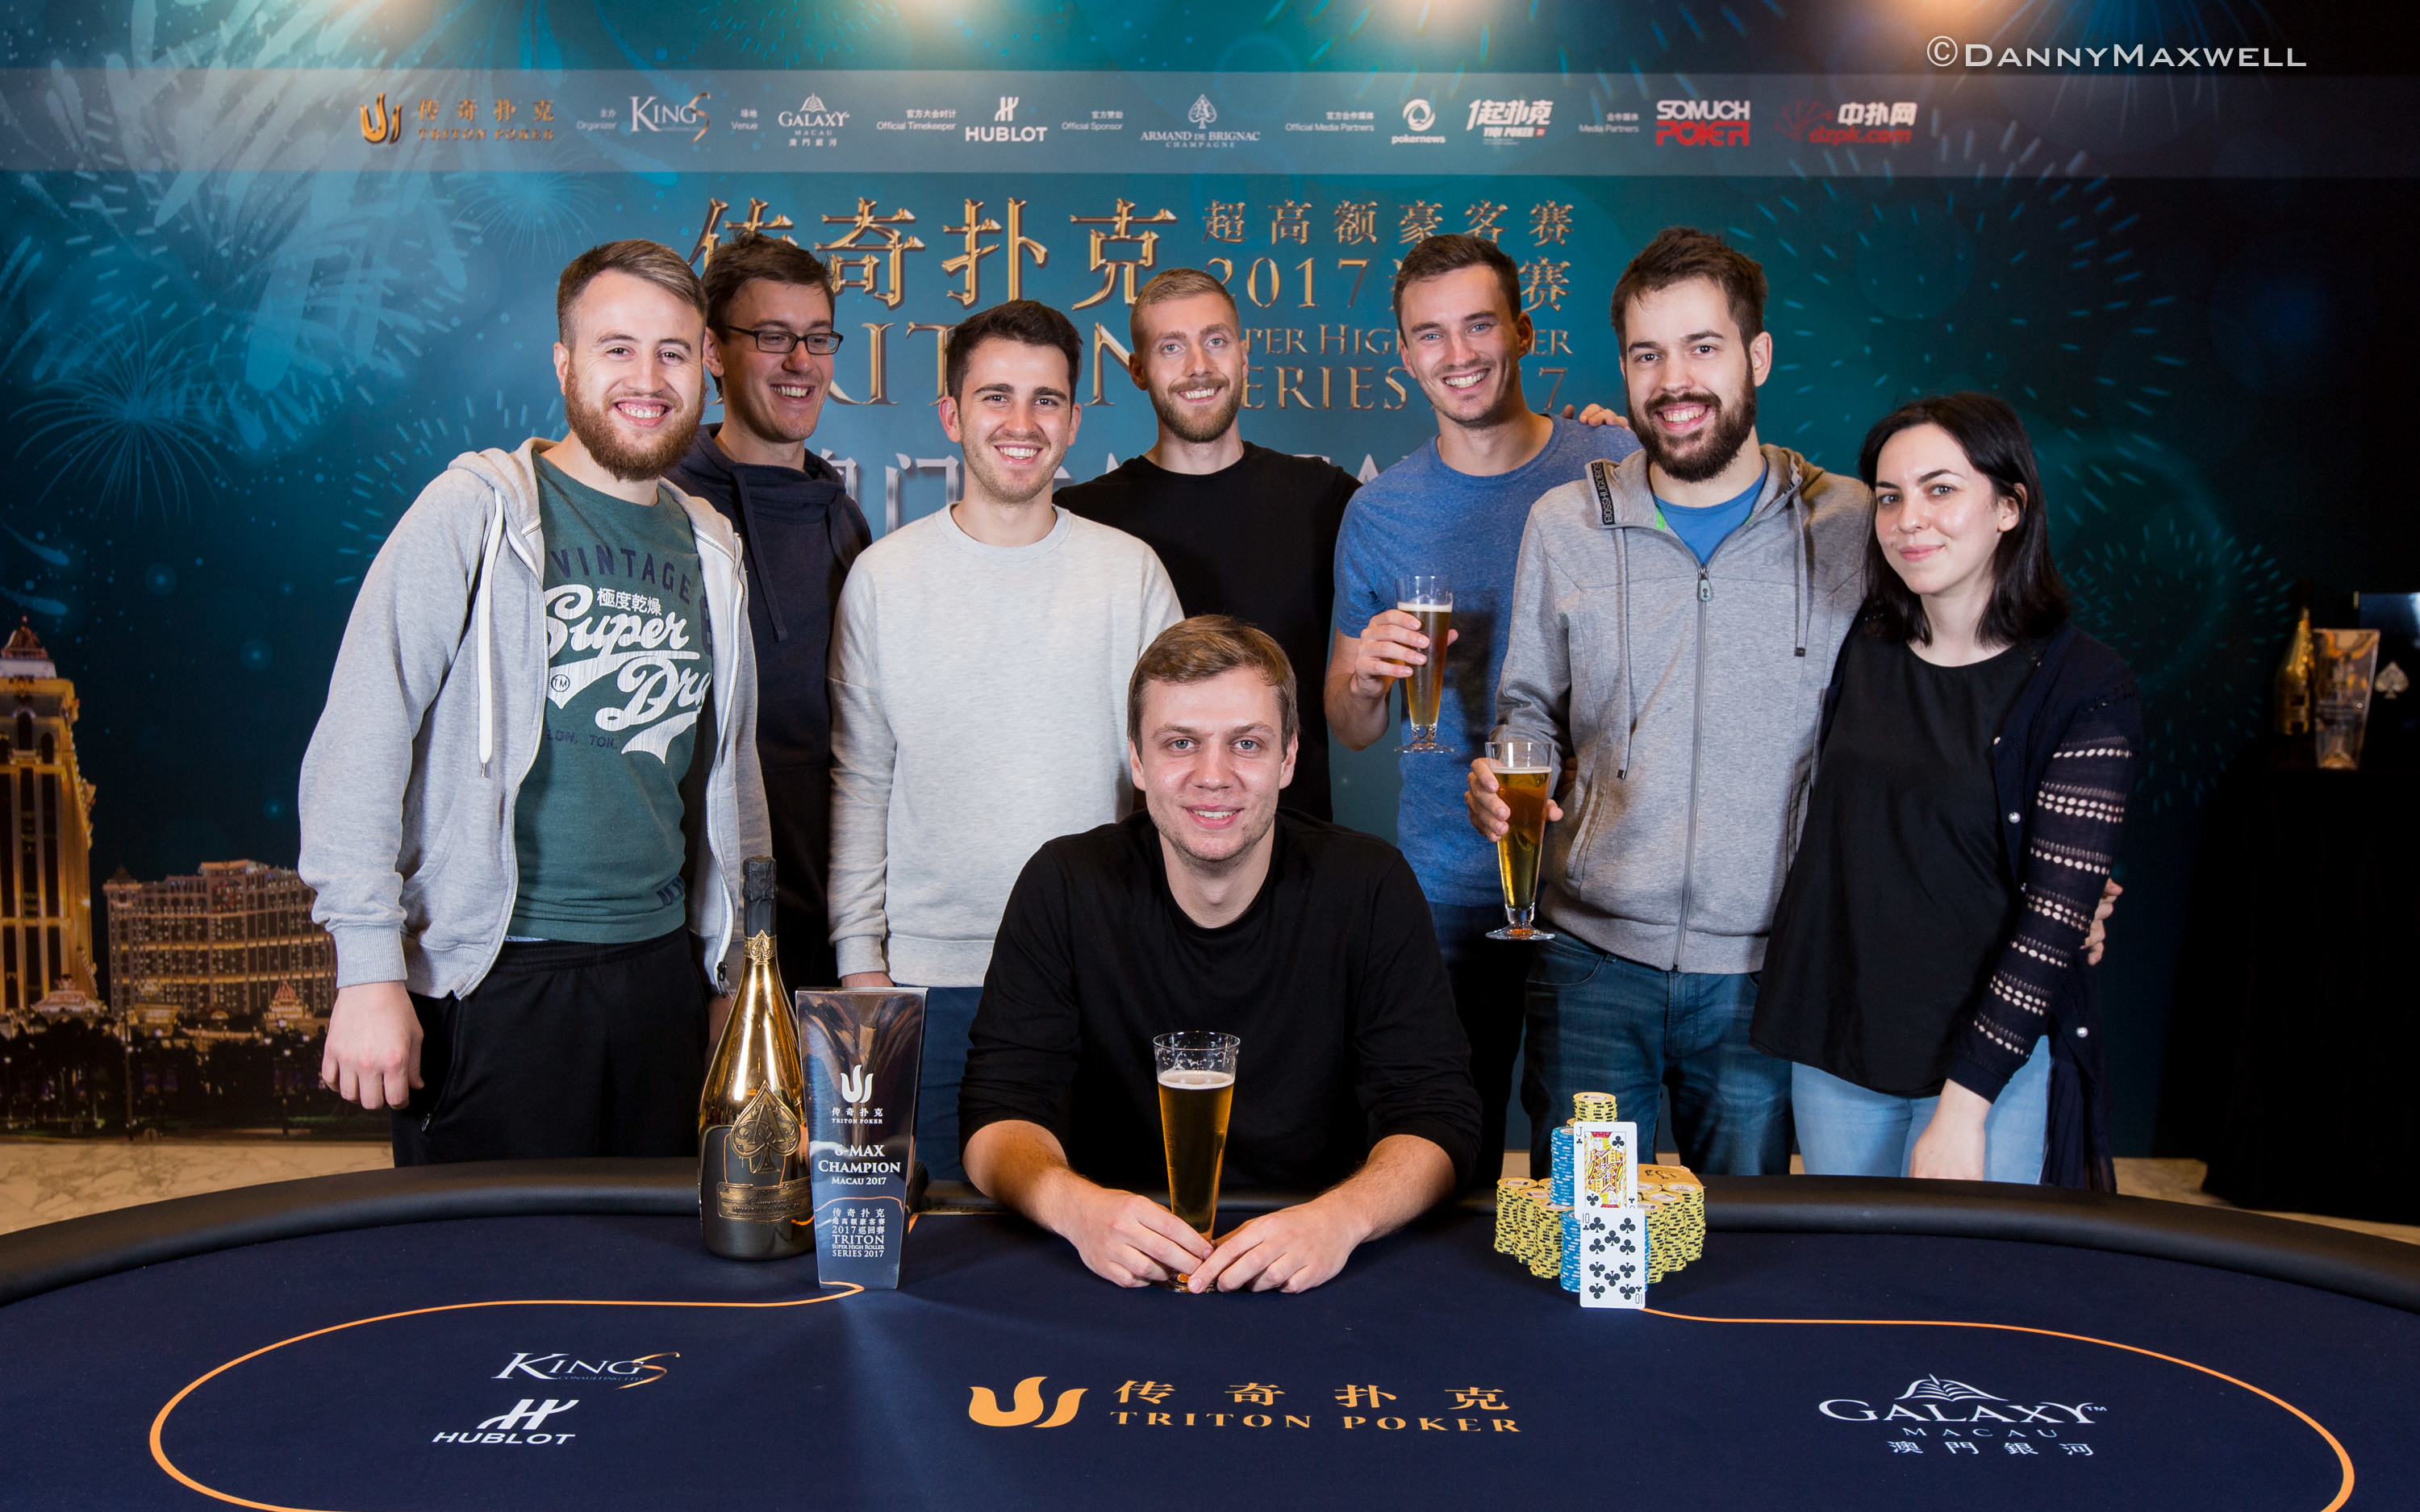 Stefan Schillhabel - 2017 Triton Super High Roller Series Macau HK $250,000 6-Max Event Winner